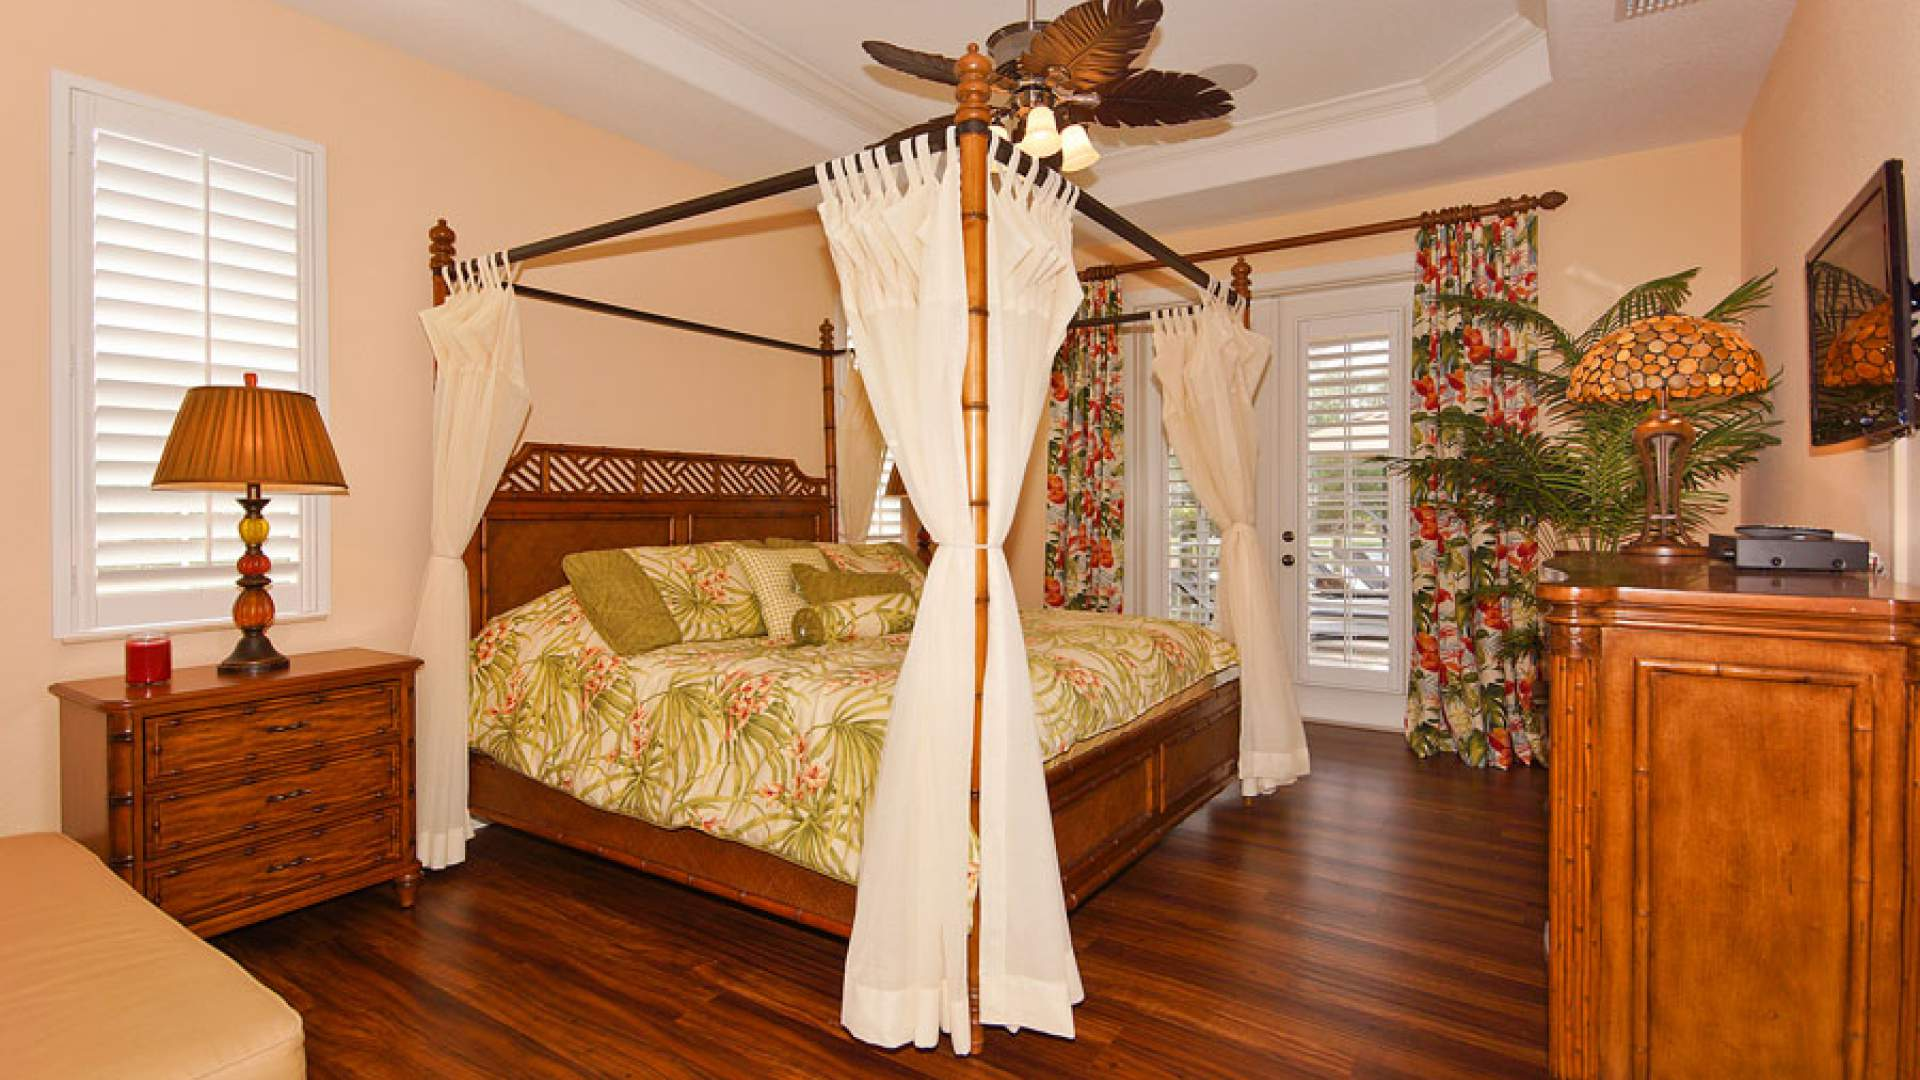 The master bedroom is dominated by tropical accents